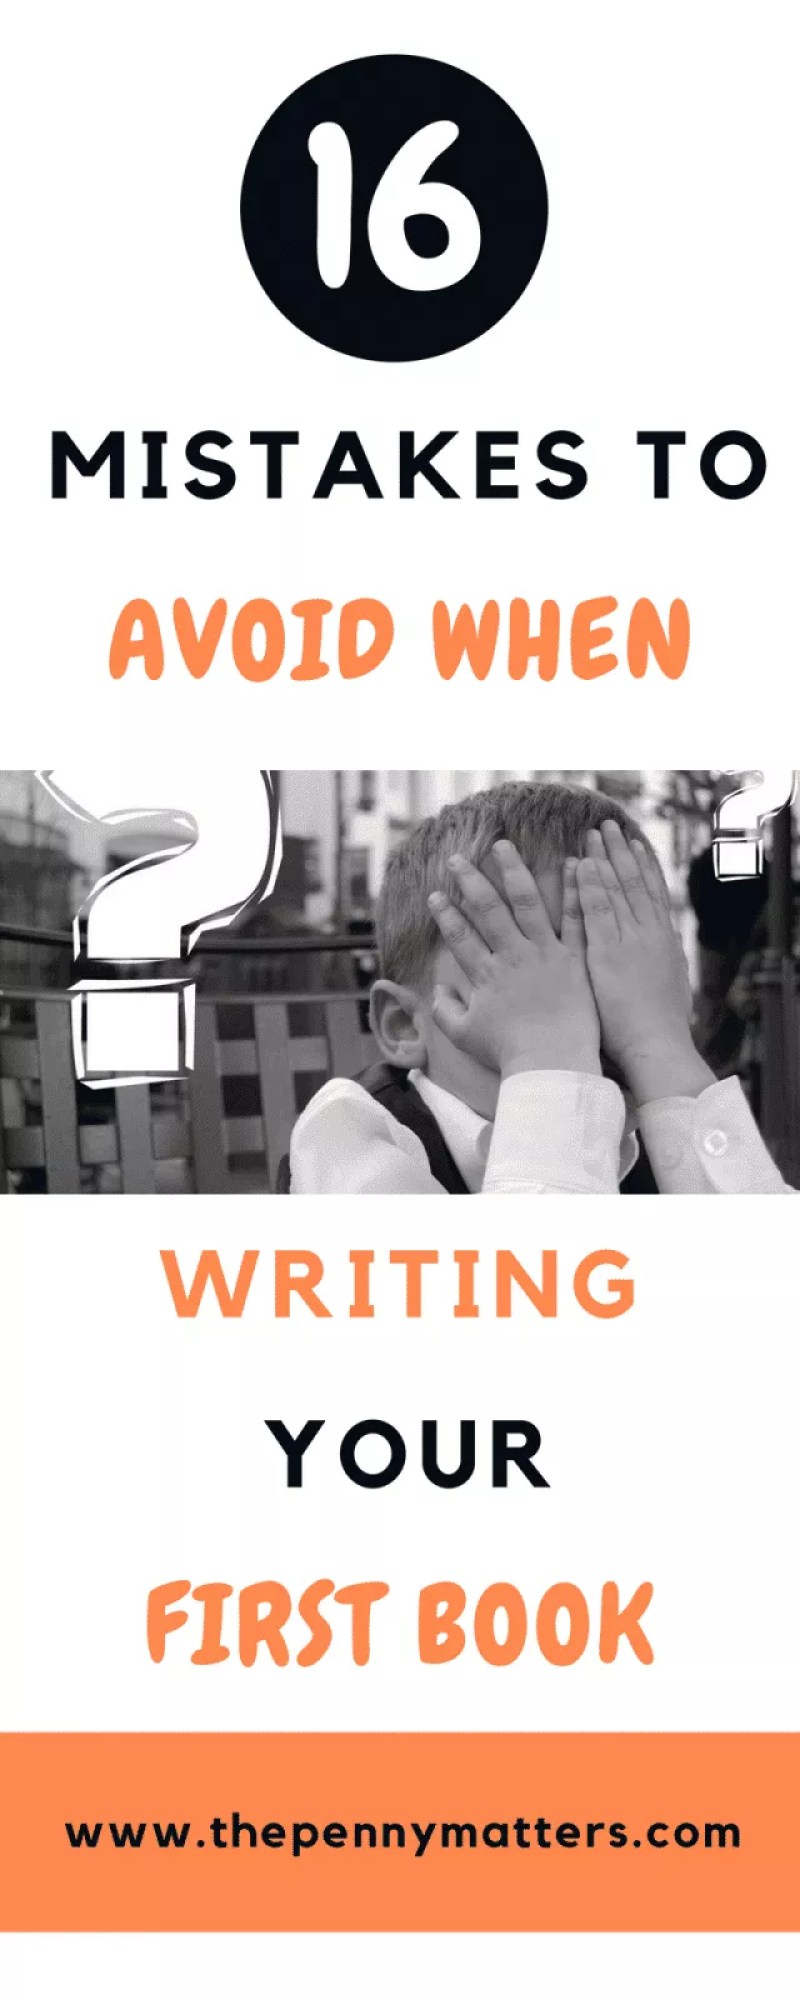 16 Mistakes to Avoid When Writing Your First Book